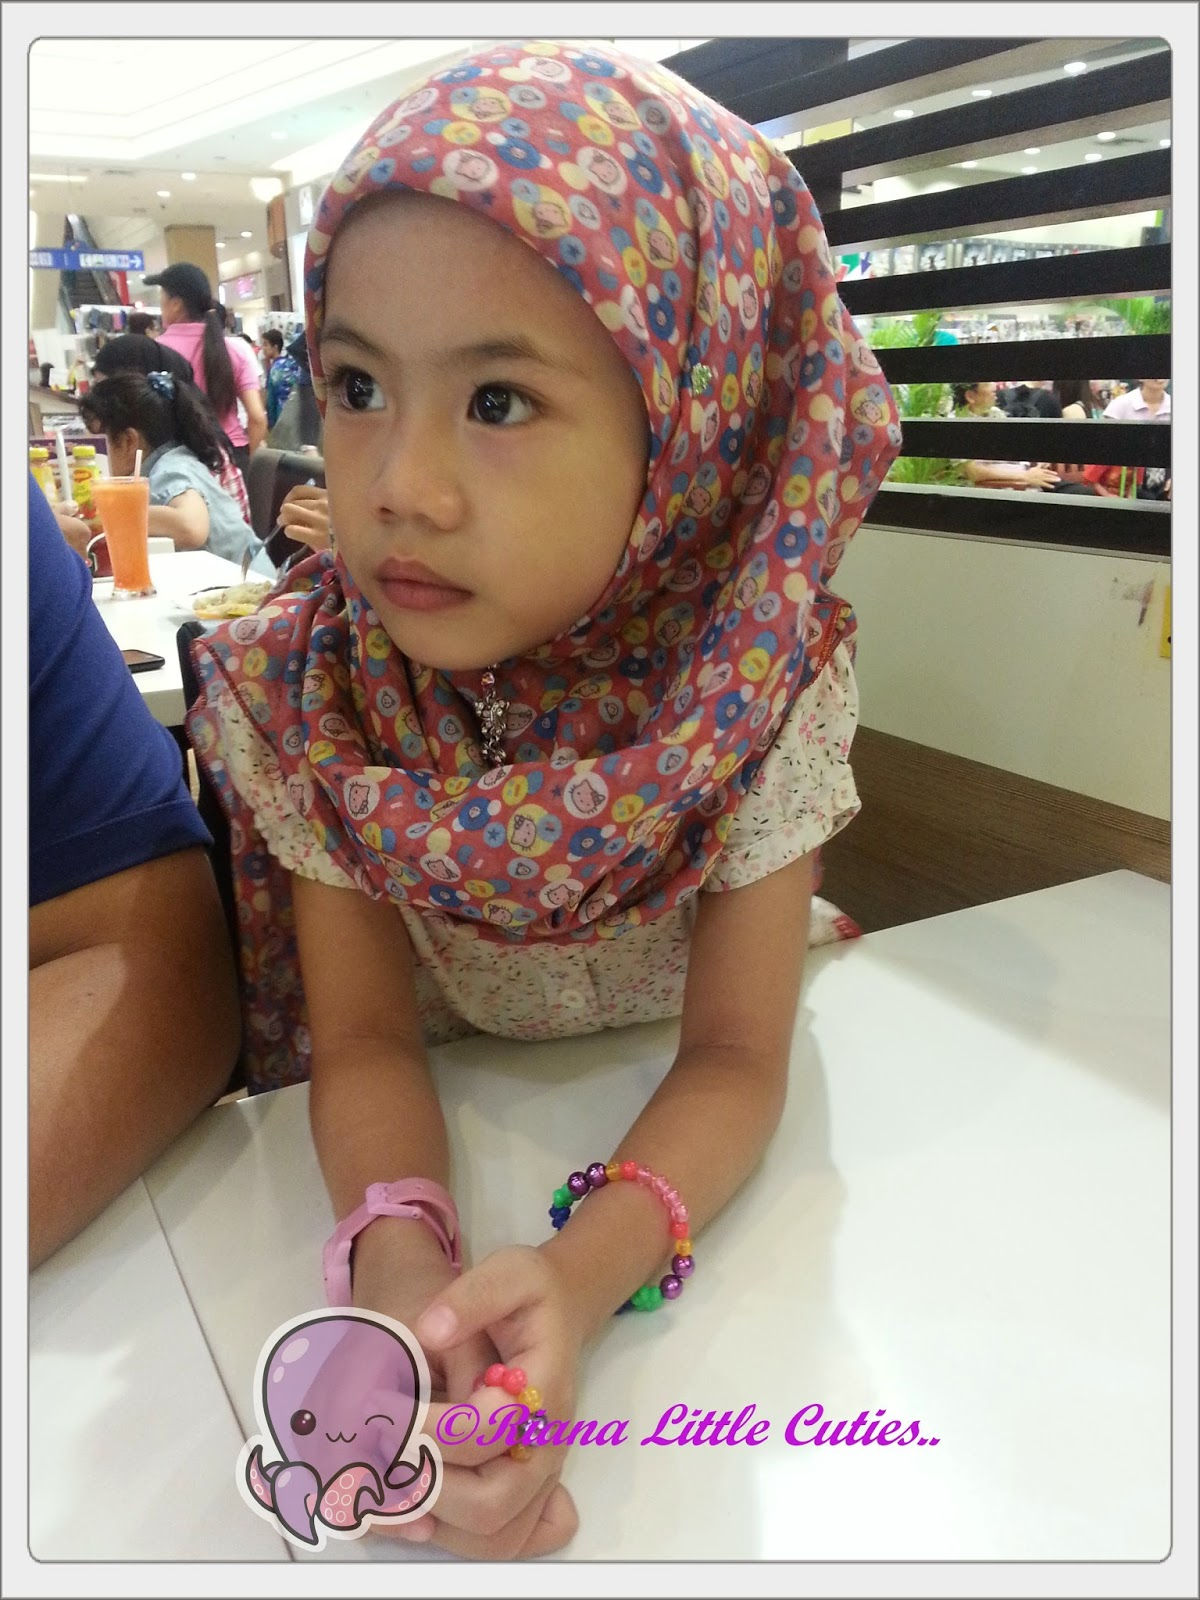 Riana Little Cuties April 2015 Tcash Vaganza 35 Viva Skin Food Cream 30 G Tgh Kusyuk Tgk Org Buat Ais Ditepi Tu